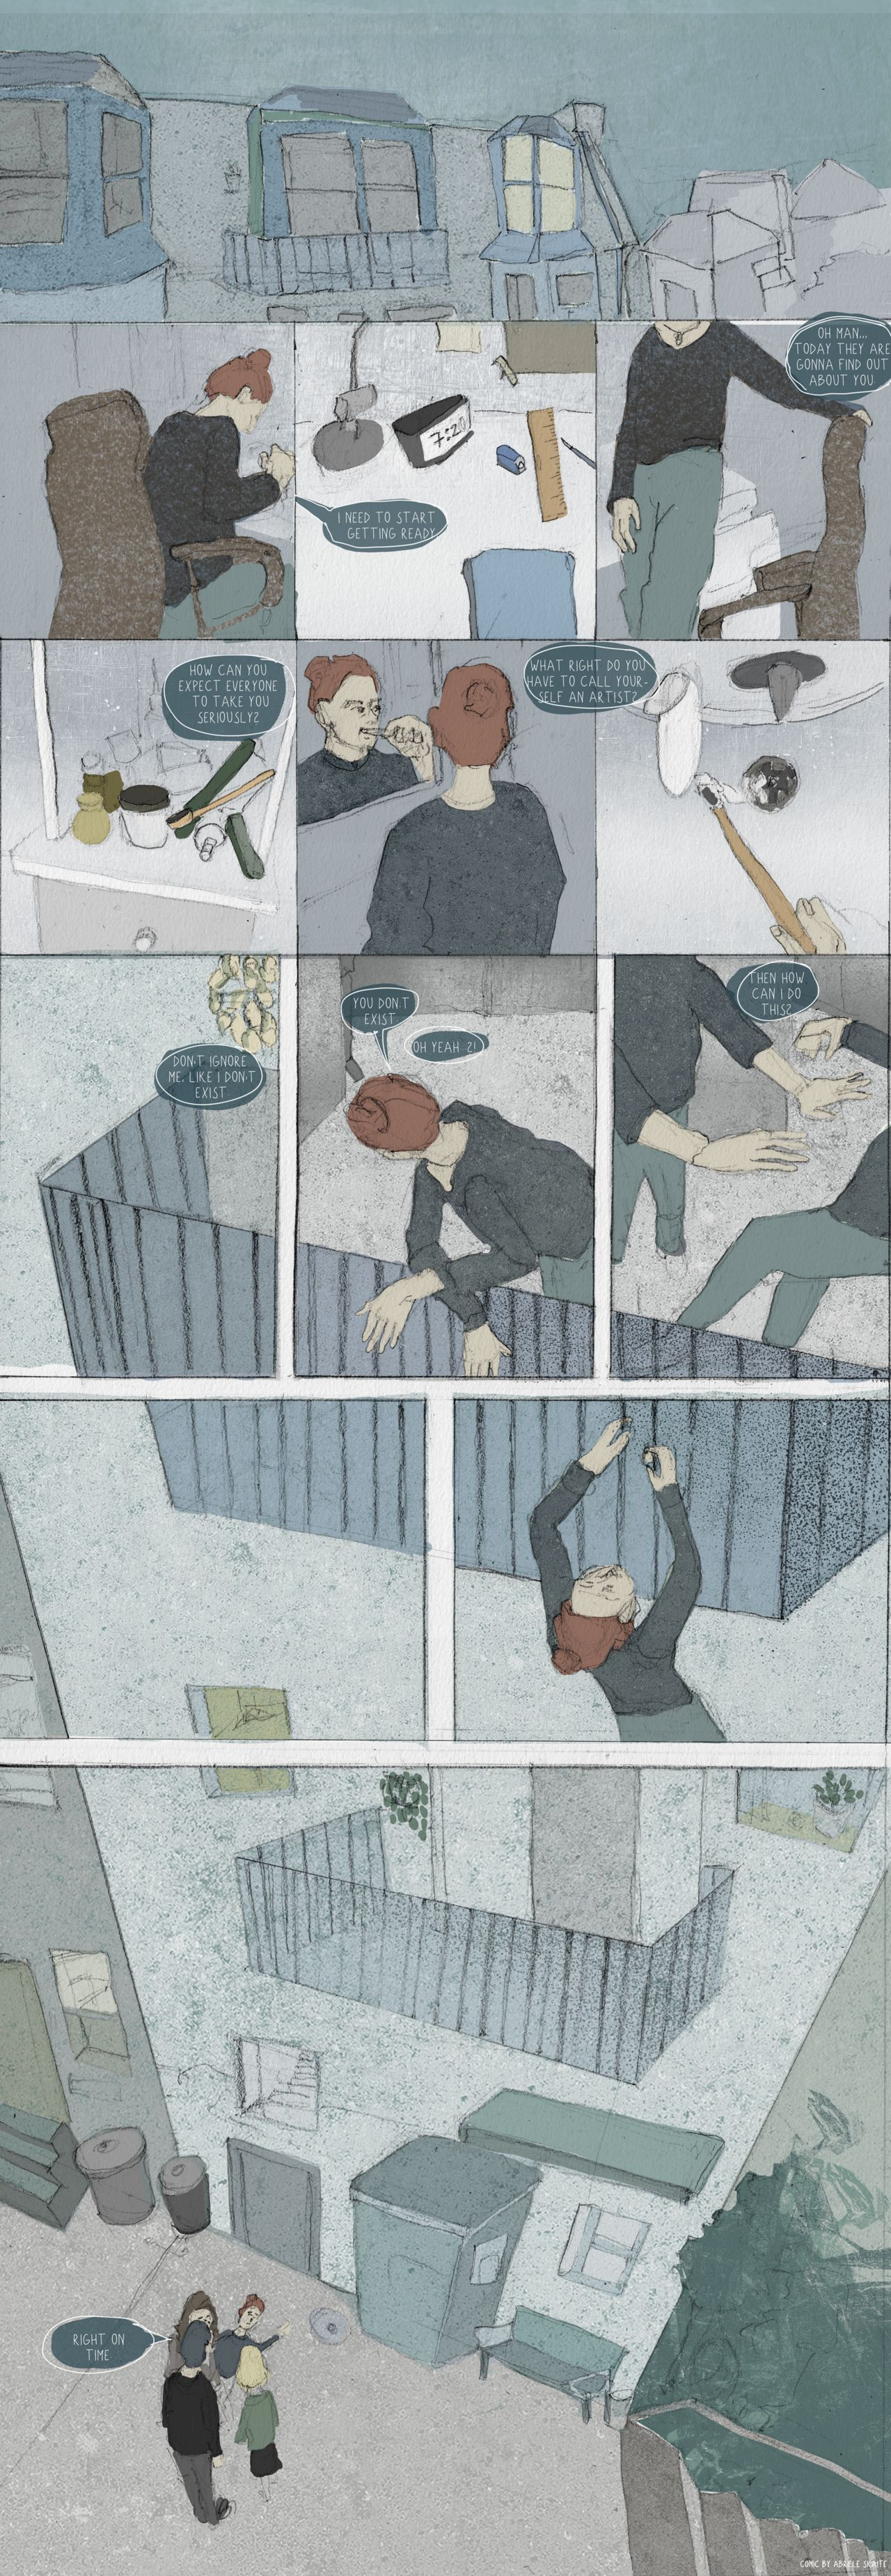 "A webcomic drawn using soft greys and dark pastel tones. It depicts a woman going about her morning routine and her inner voice tells her today everyone will find out about her. That she's not good enough. That she shouldn't call herself an artist. When she claps back at herself, she falls off the balcony and lands amongst a small crowd of people who say ""right on time""."